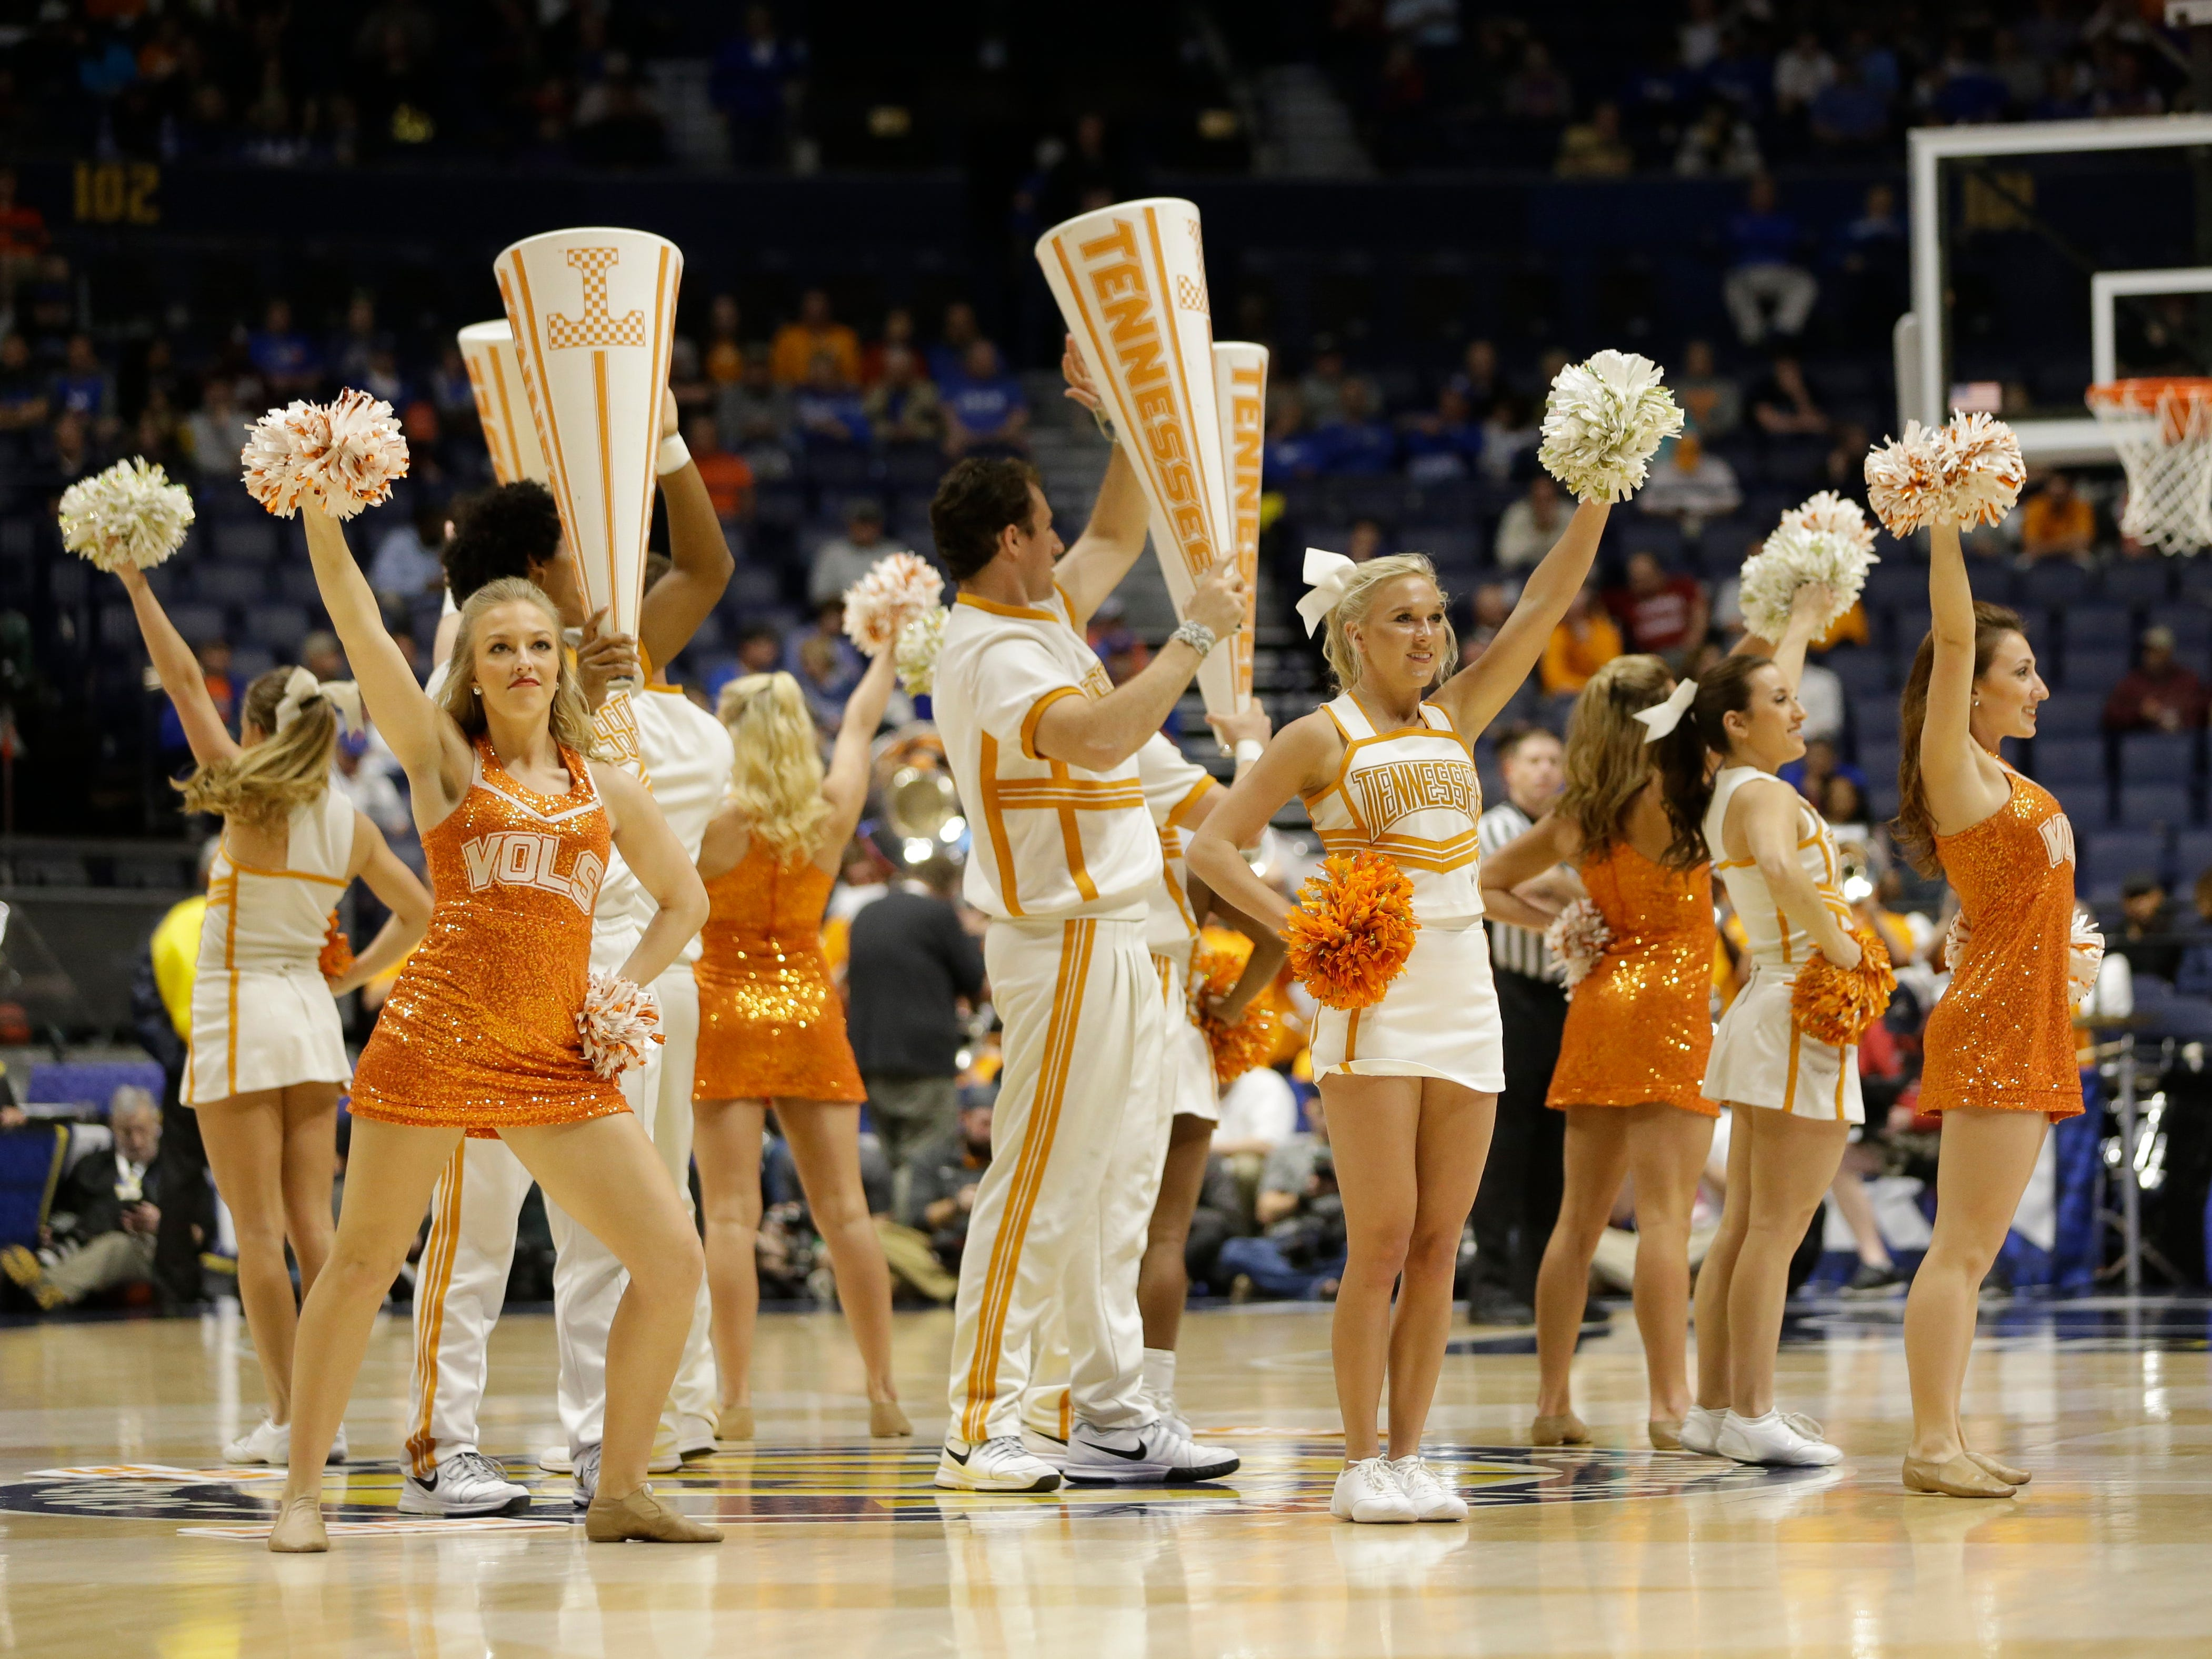 Tennessee cheerleaders perform during the second half of an NCAA college basketball game against Vanderbilt in the Southeastern Conference tournament in Nashville, Tenn., Thursday, March 10, 2016. (AP Photo/Mark Humphrey)